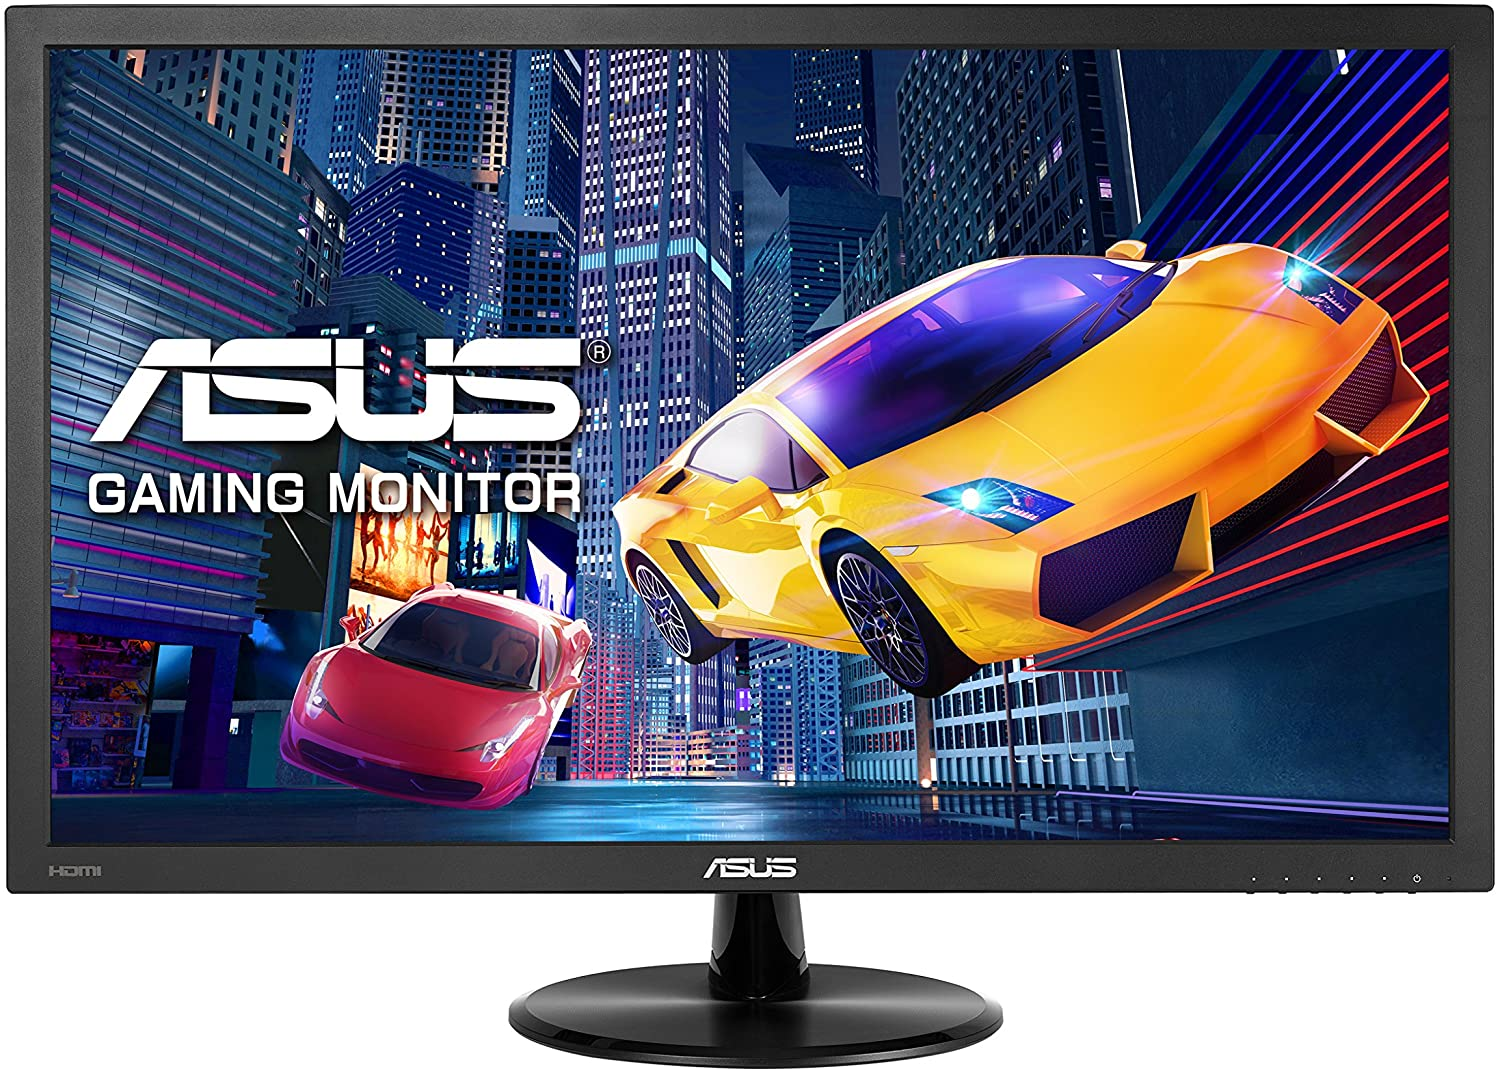 Gaming Monitor Asus amazon